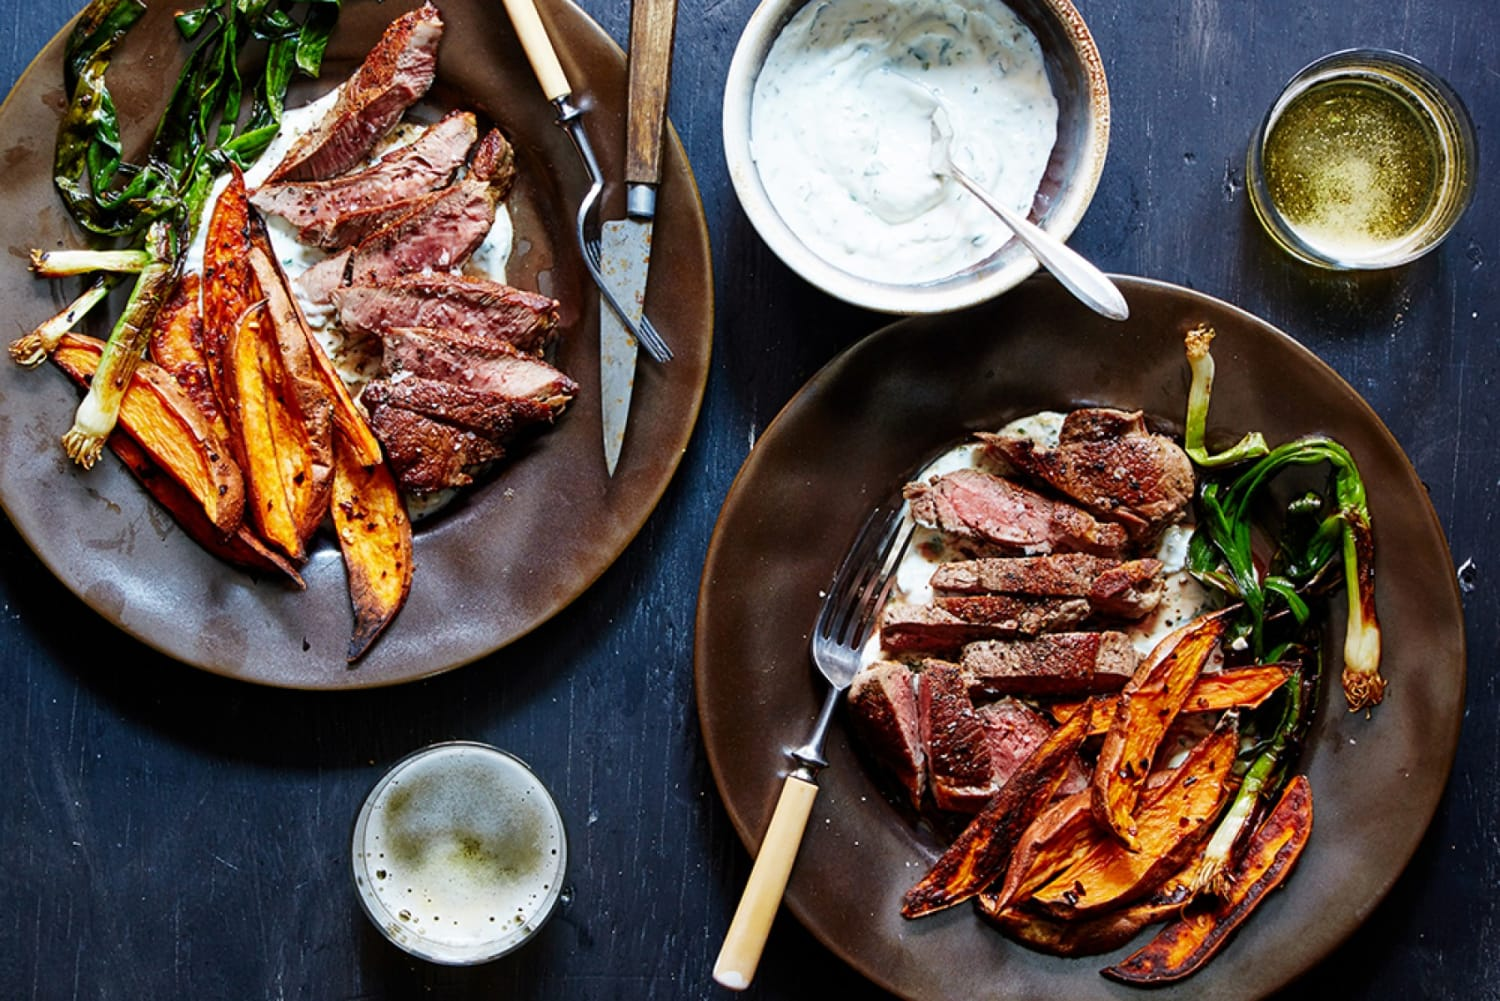 Marley Spoon Lamb and Spicy Sweet Potatoes